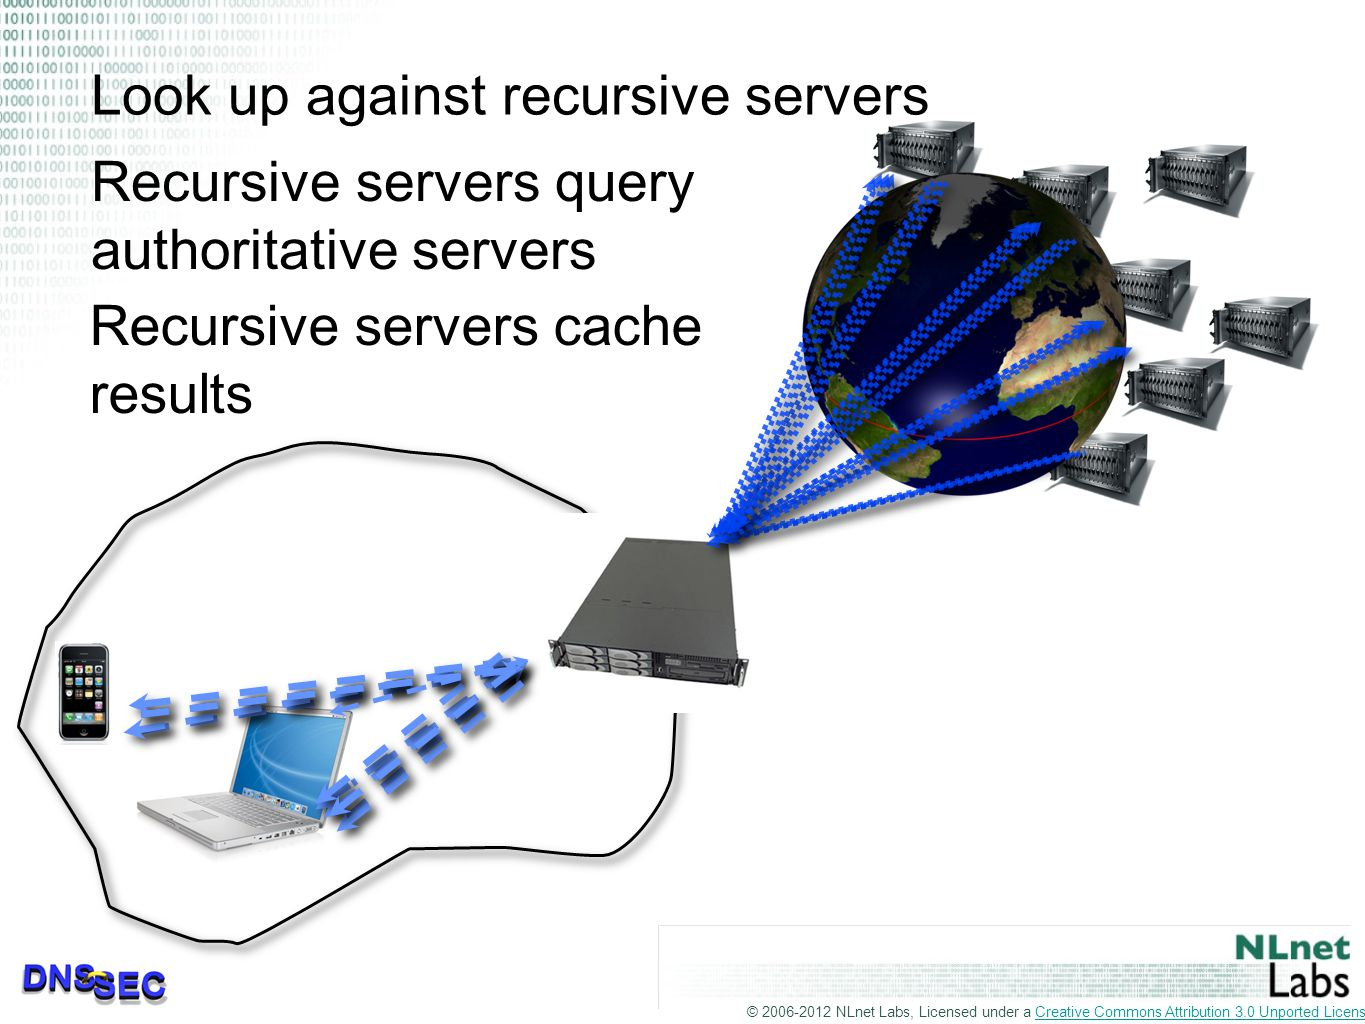 © 2006-2012 NLnet Labs, Licensed under a Creative Commons Attribution 3.0 Unported License.Creative Commons Attribution 3.0 Unported License Look up against recursive servers Recursive servers query authoritative servers Recursive servers cache results